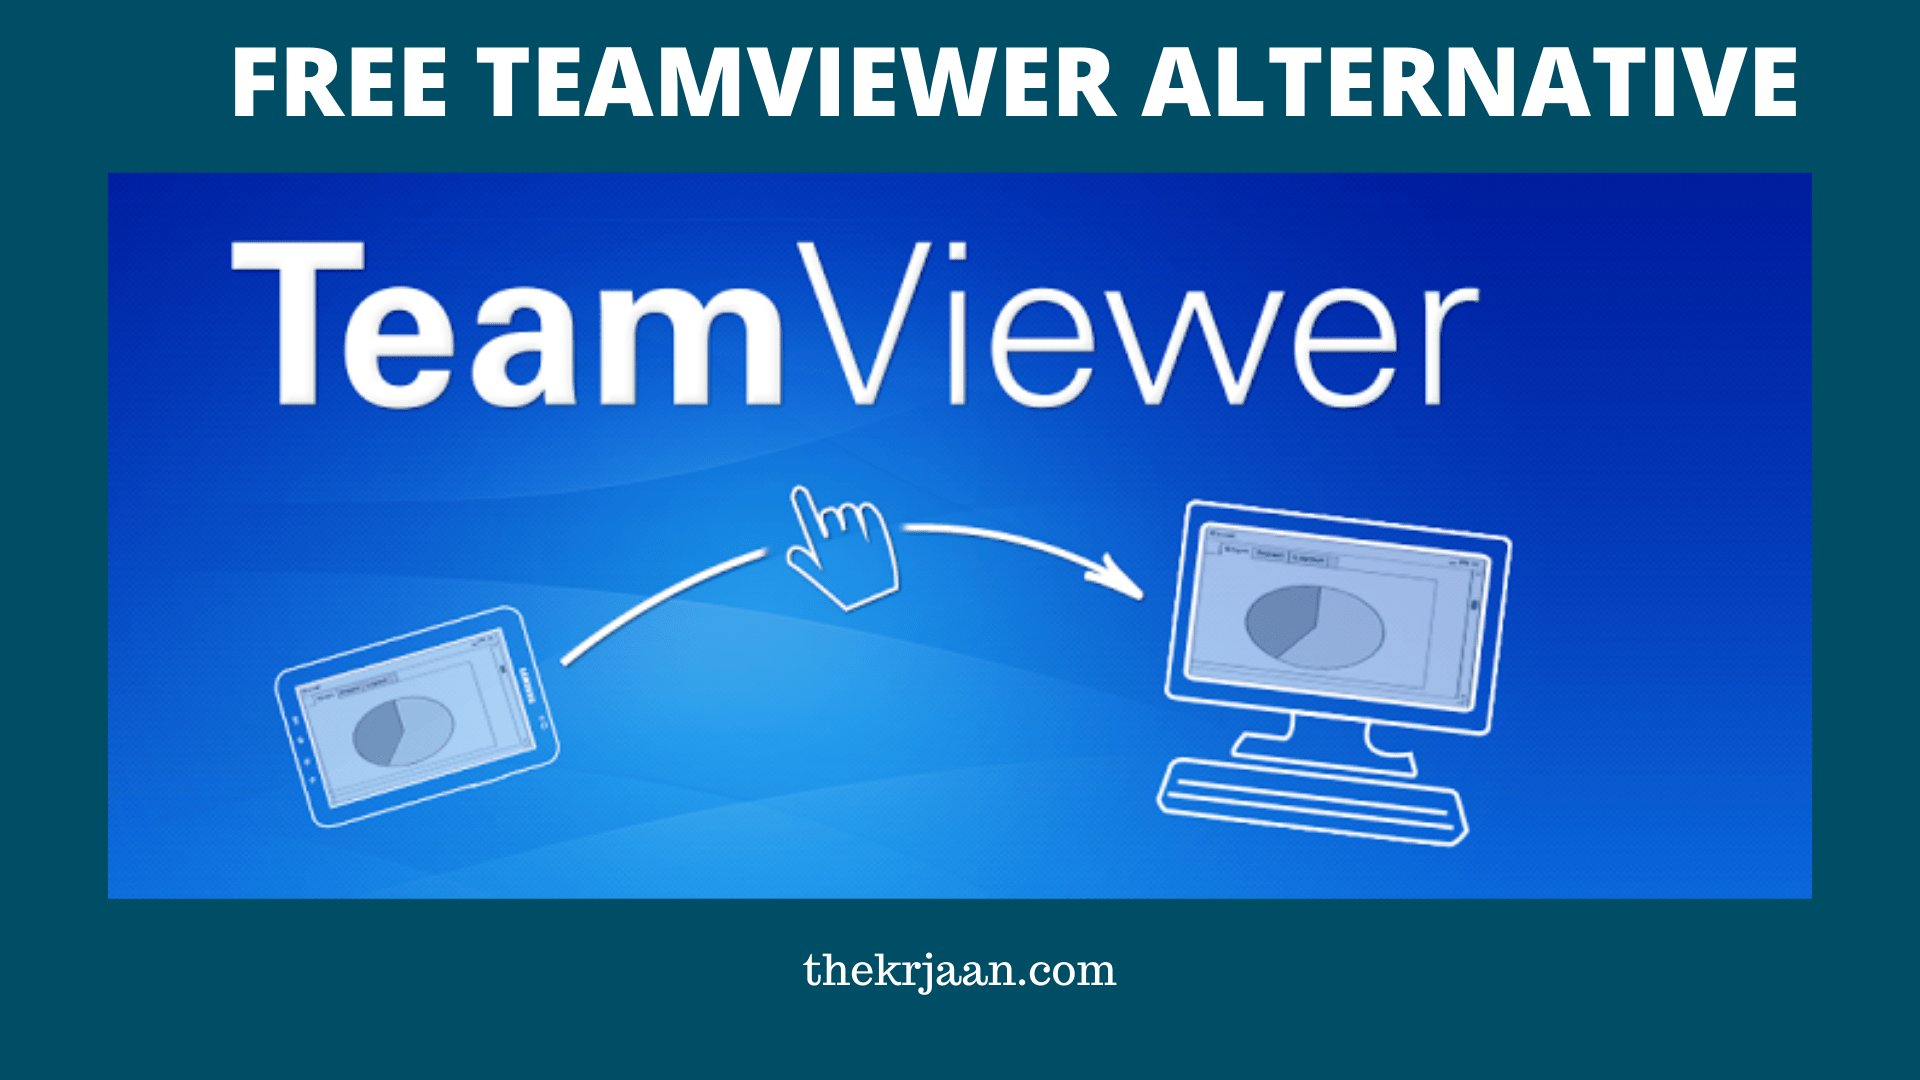 Free Teamviewer Alternatives in 2020